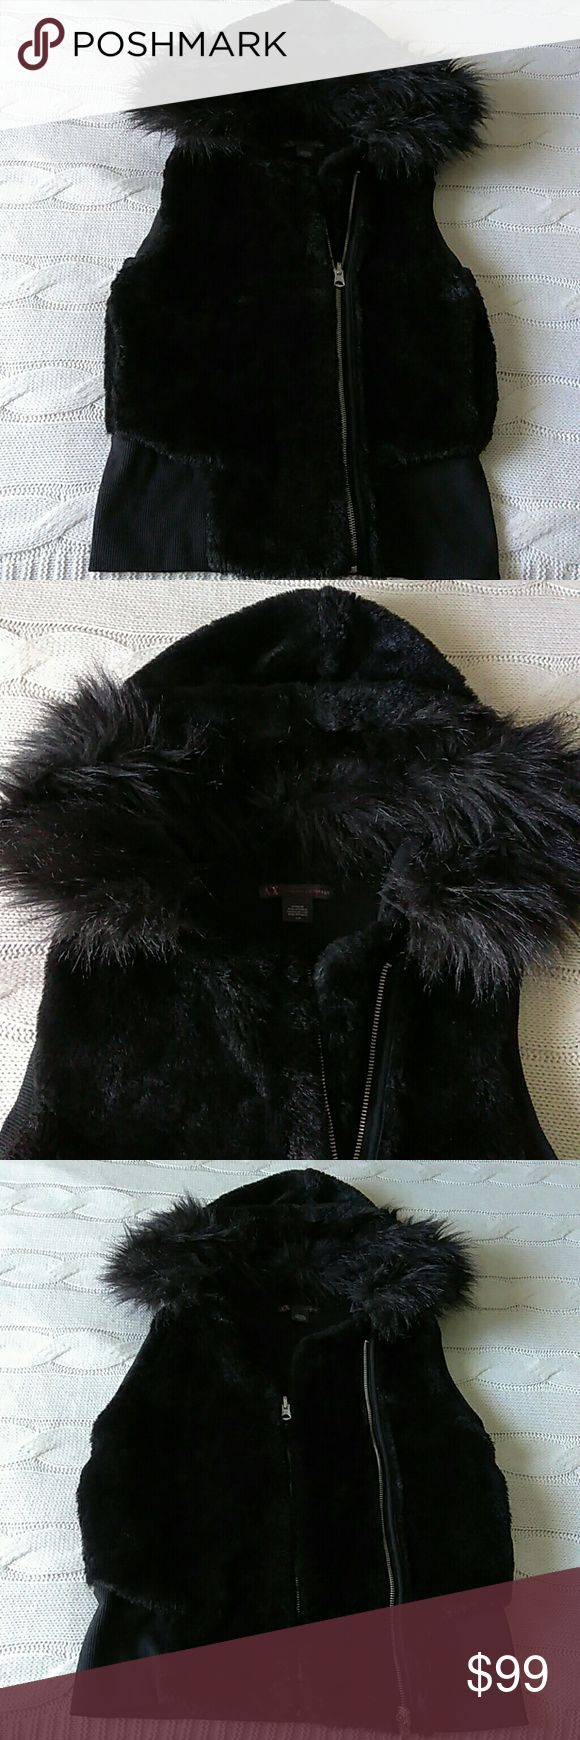 Armani Exchange Hooded Fur Vest Jacket Armani Exchange Hooded Fur Vest Jacket. Dual Zipper for a more fitted or loose fit (Size S or M). Button on & off fur trim on the hood. Armani Exchange Jackets & Coats